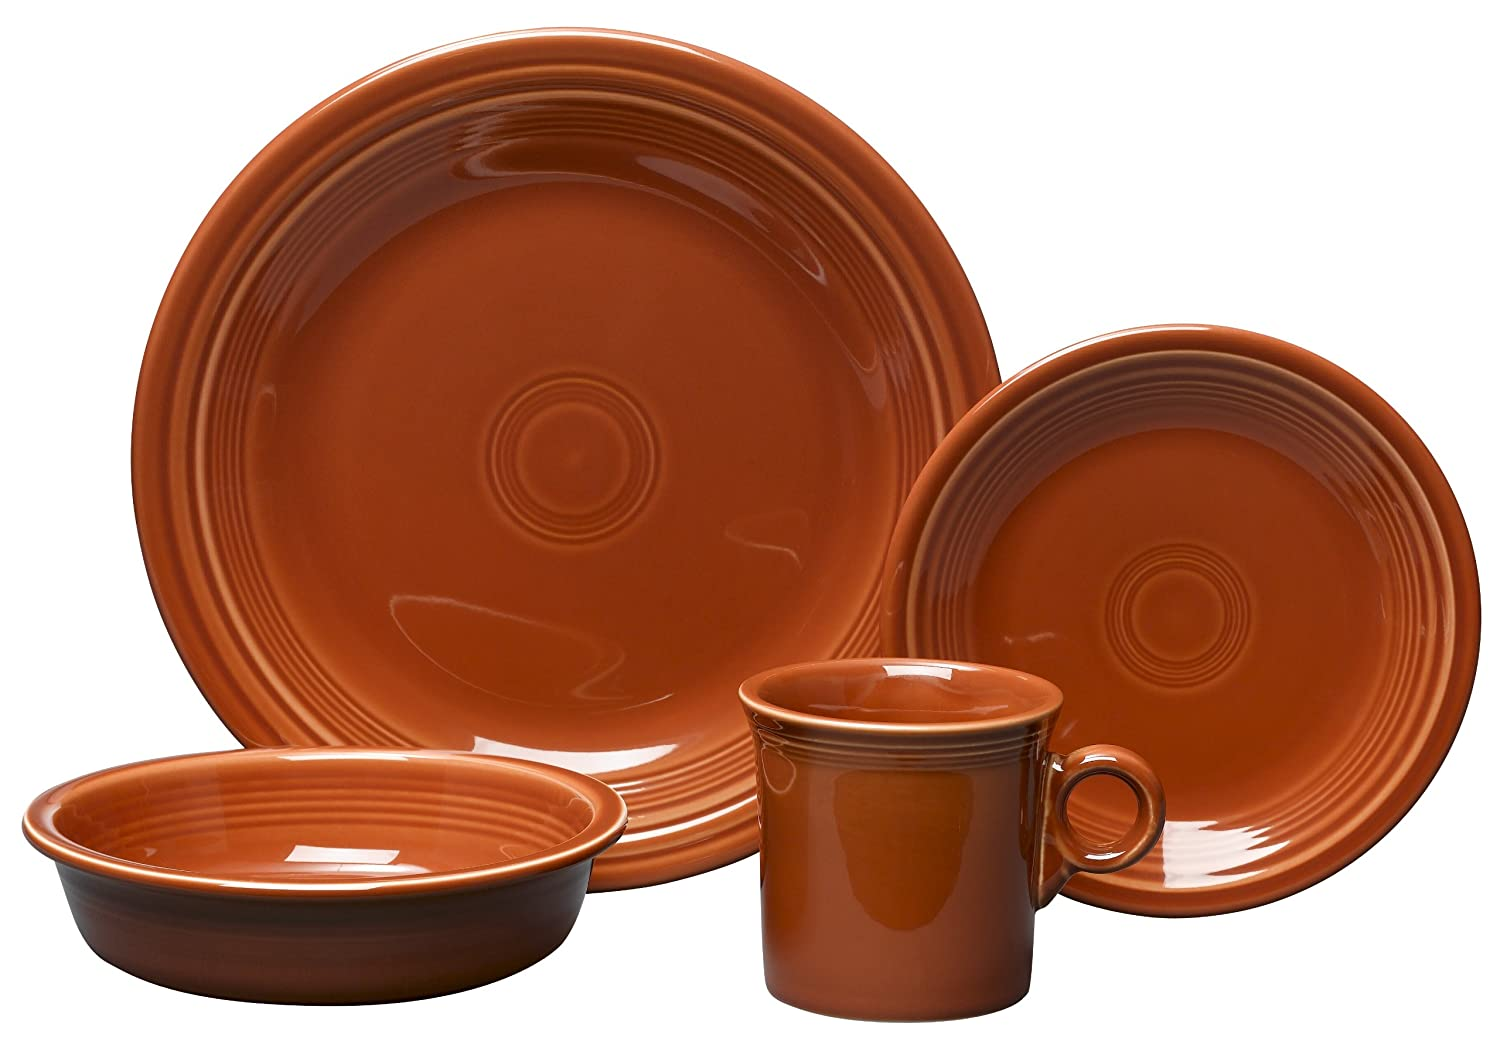 Amazon.com | Fiesta 4-Piece Place Setting Paprika Dinnerware Sets Dinnerware Sets  sc 1 st  Amazon.com & Amazon.com | Fiesta 4-Piece Place Setting Paprika: Dinnerware Sets ...